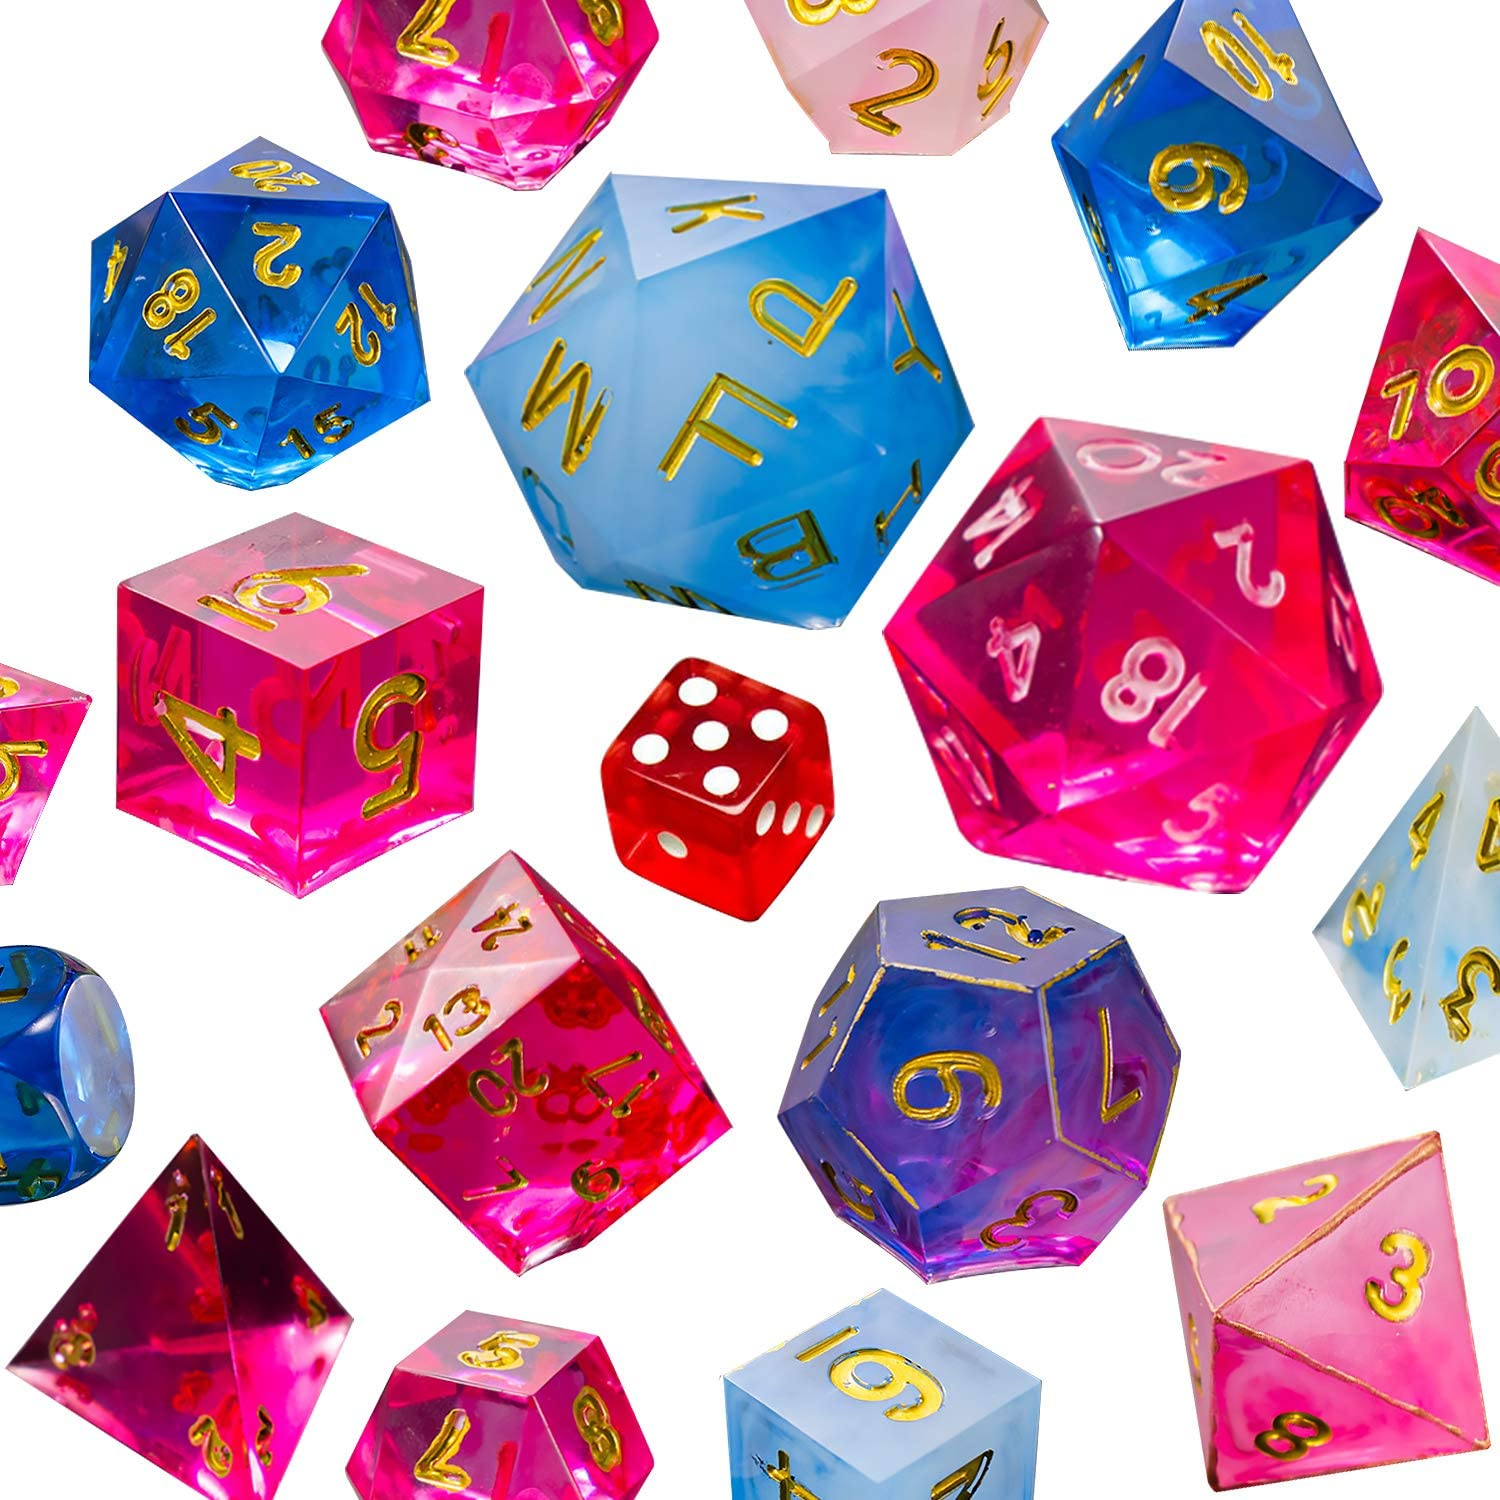 2 Part Mold Polyhedral Dice FULL SET